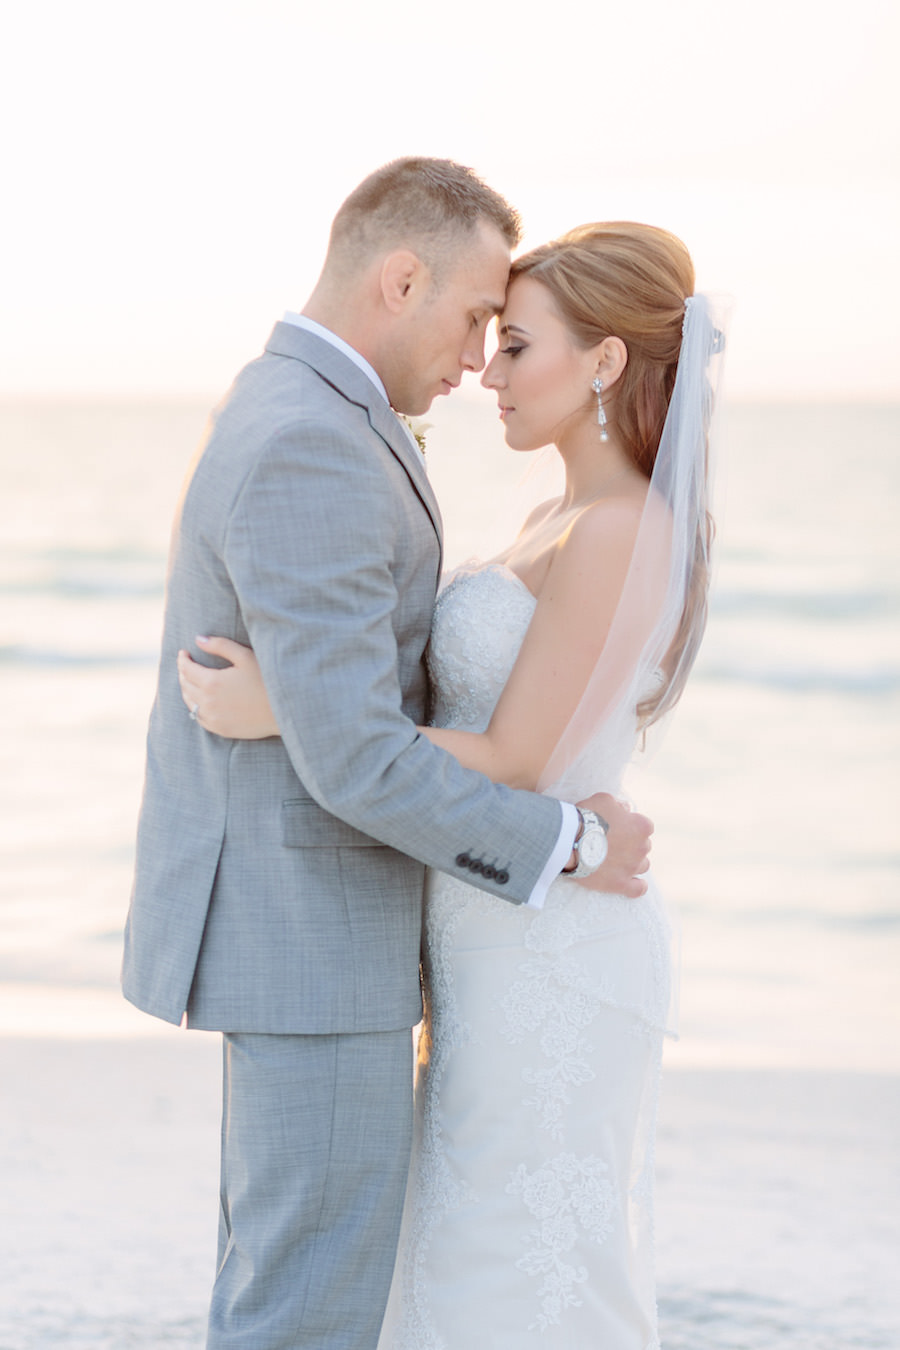 Florida Waterfront Bride and Groom Sunset Wedding Portrait   Clearwater Beach Bridal Hair and Makeup by Michele Renee The Studio